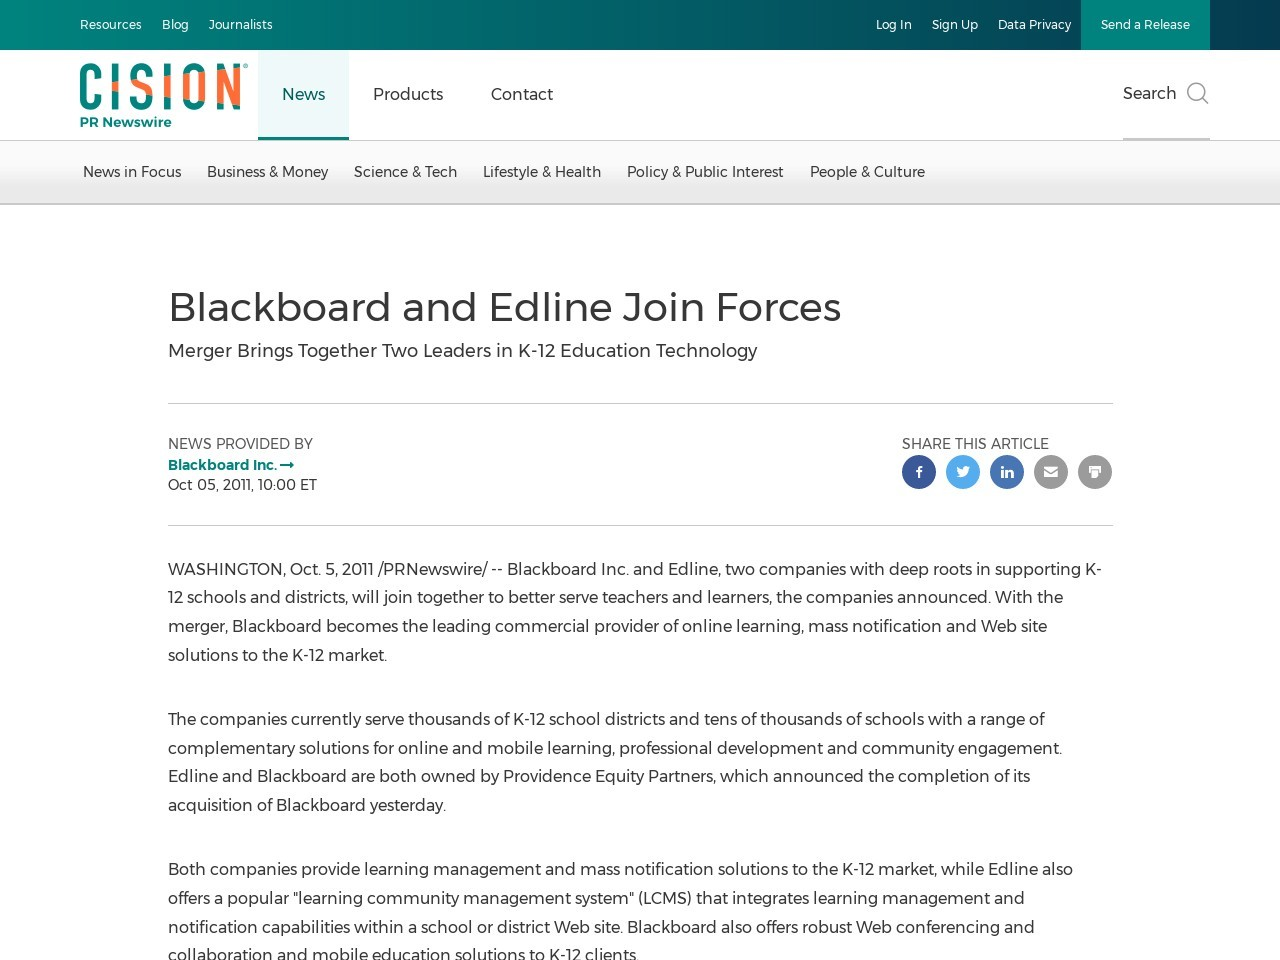 Blackboard and Edline Join Forces - PR Newswire